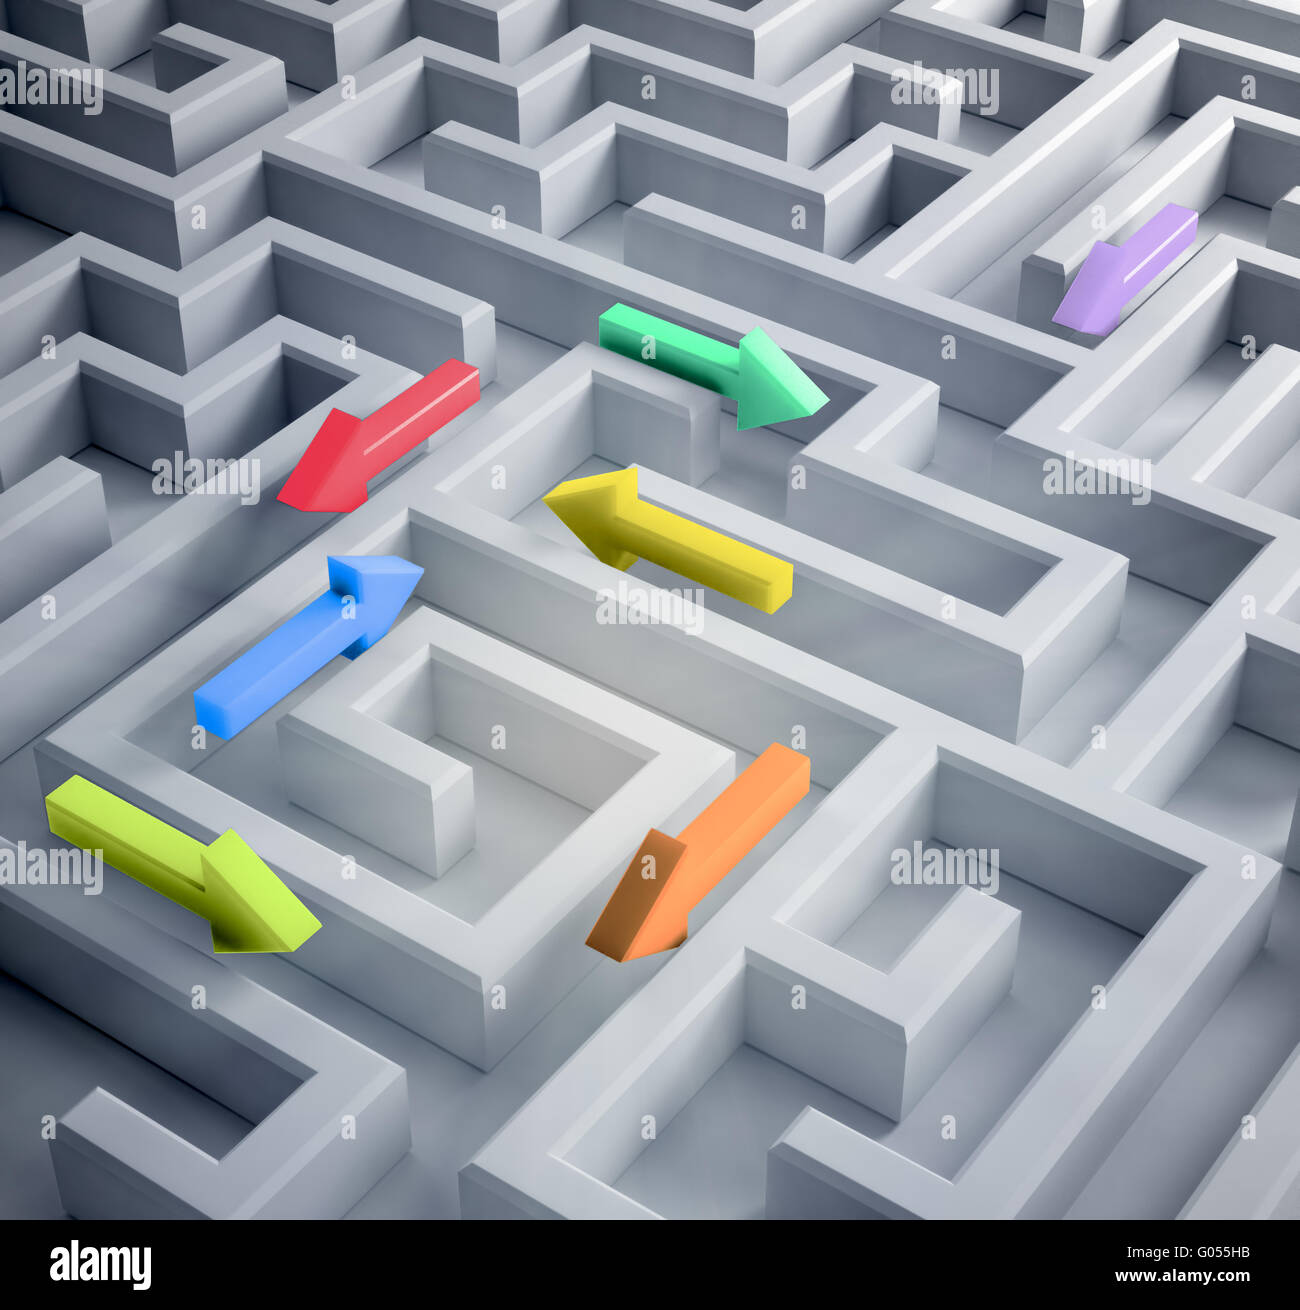 labyrinth with arrows leading in different directions - Stock Image